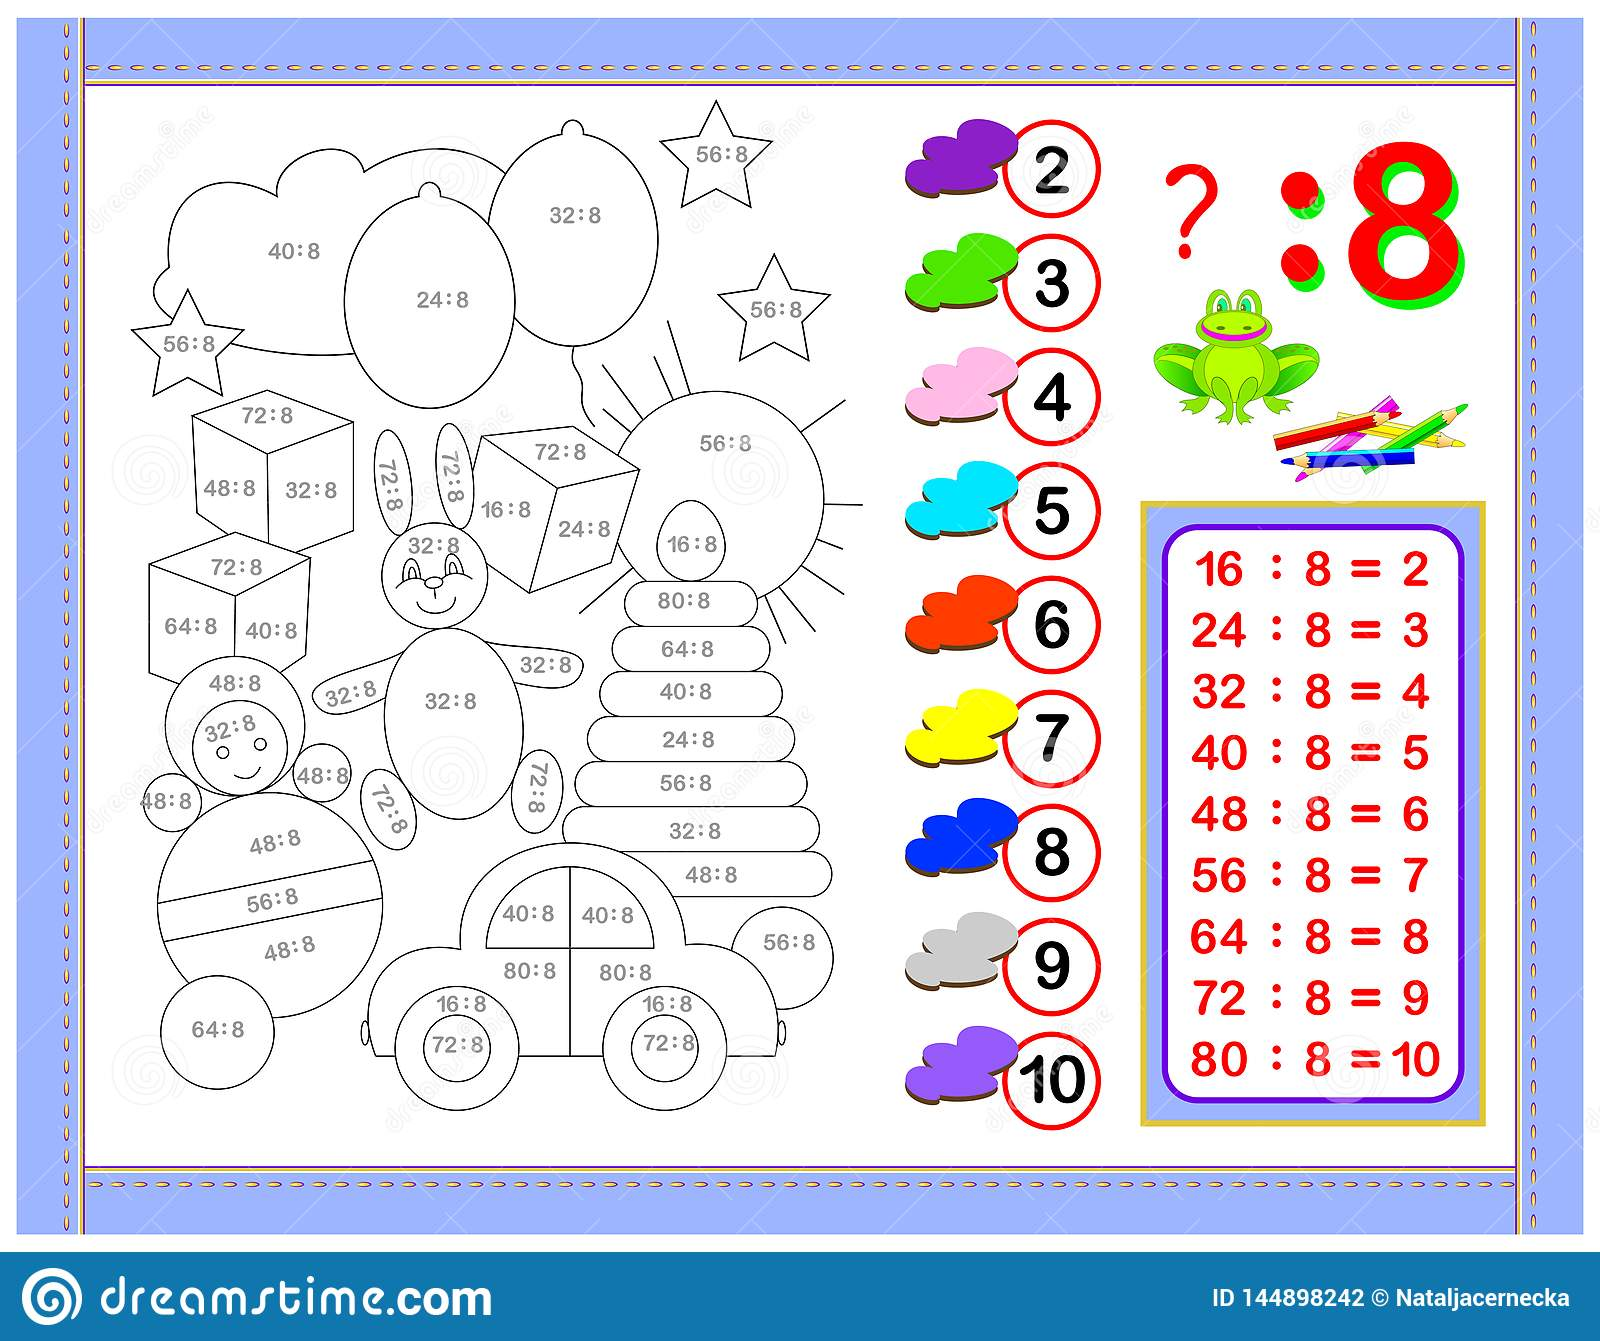 Exercises For Kids With Division By Number 8 Paint The